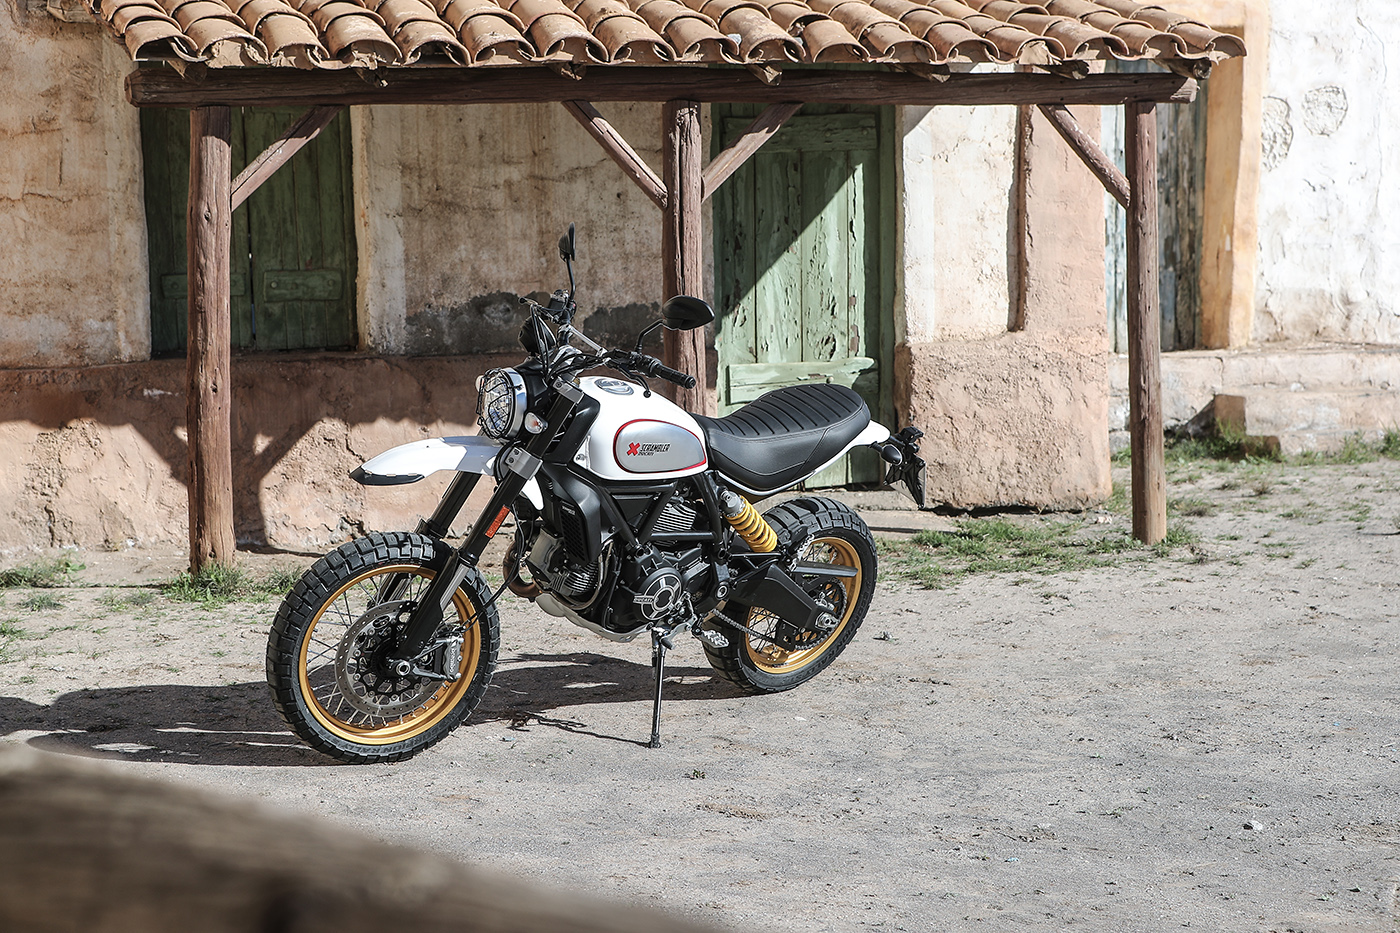 ducati scrambler desert sled review visordown. Black Bedroom Furniture Sets. Home Design Ideas